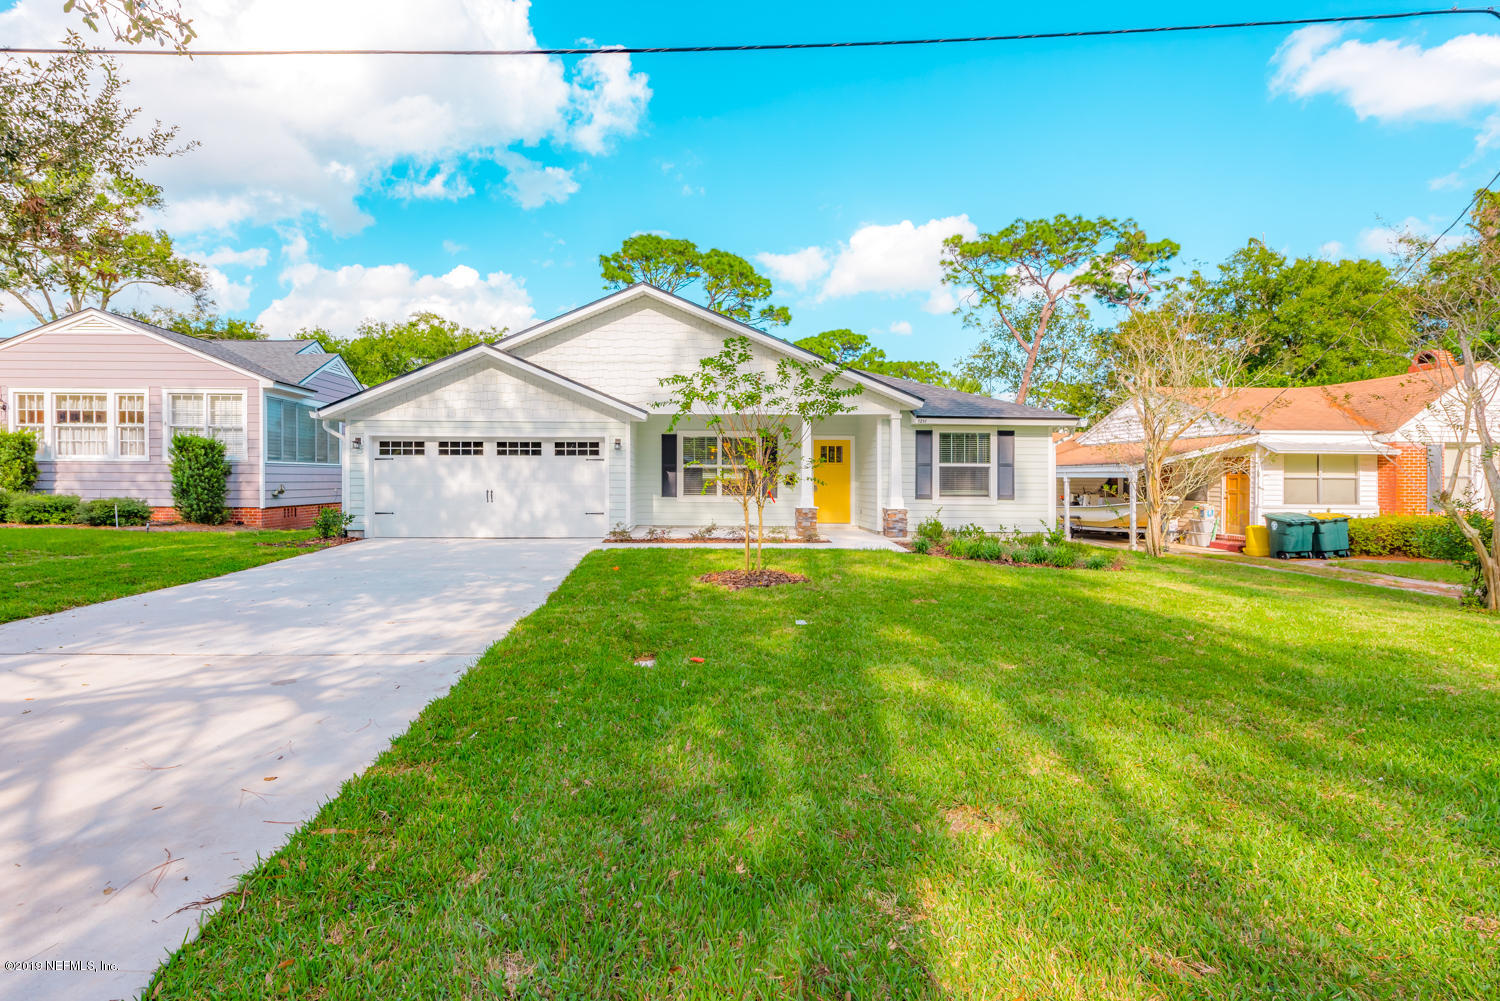 1211 MIRAMAR, JACKSONVILLE, FLORIDA 32207, 4 Bedrooms Bedrooms, ,2 BathroomsBathrooms,Residential - single family,For sale,MIRAMAR,1021477